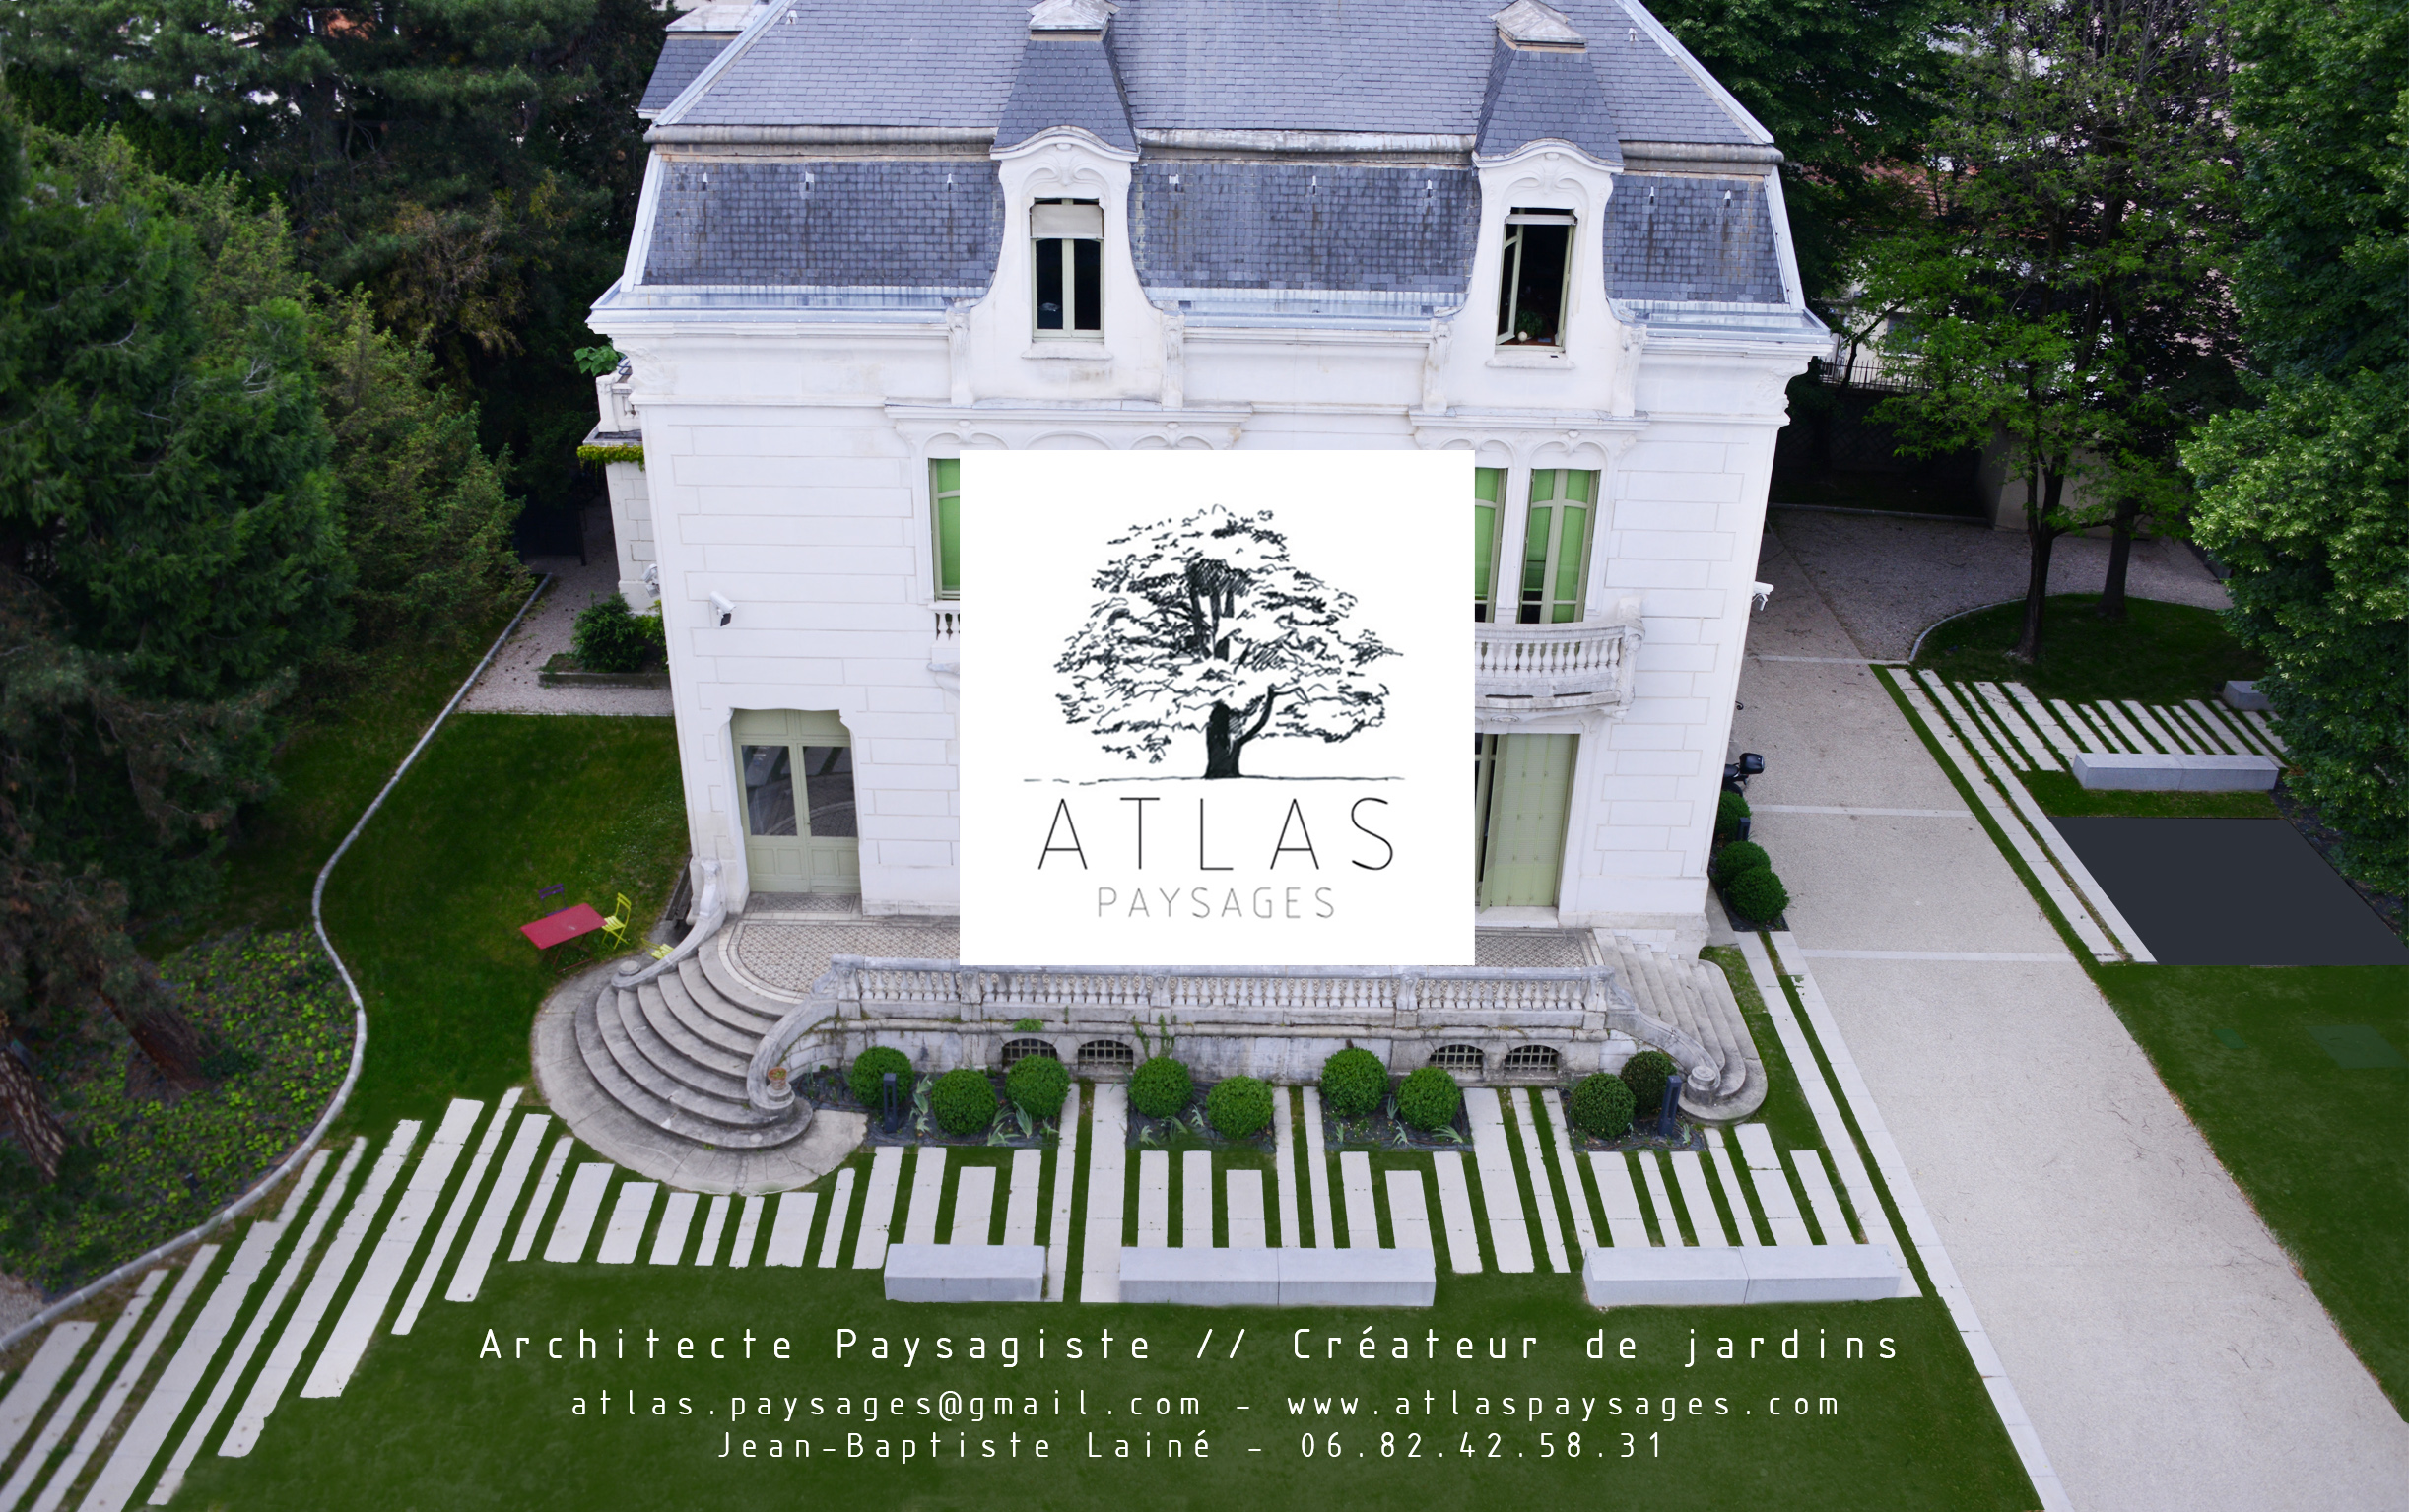 Atlas paysages architecte paysagiste cr ateur de jardins for Architectes paysagistes